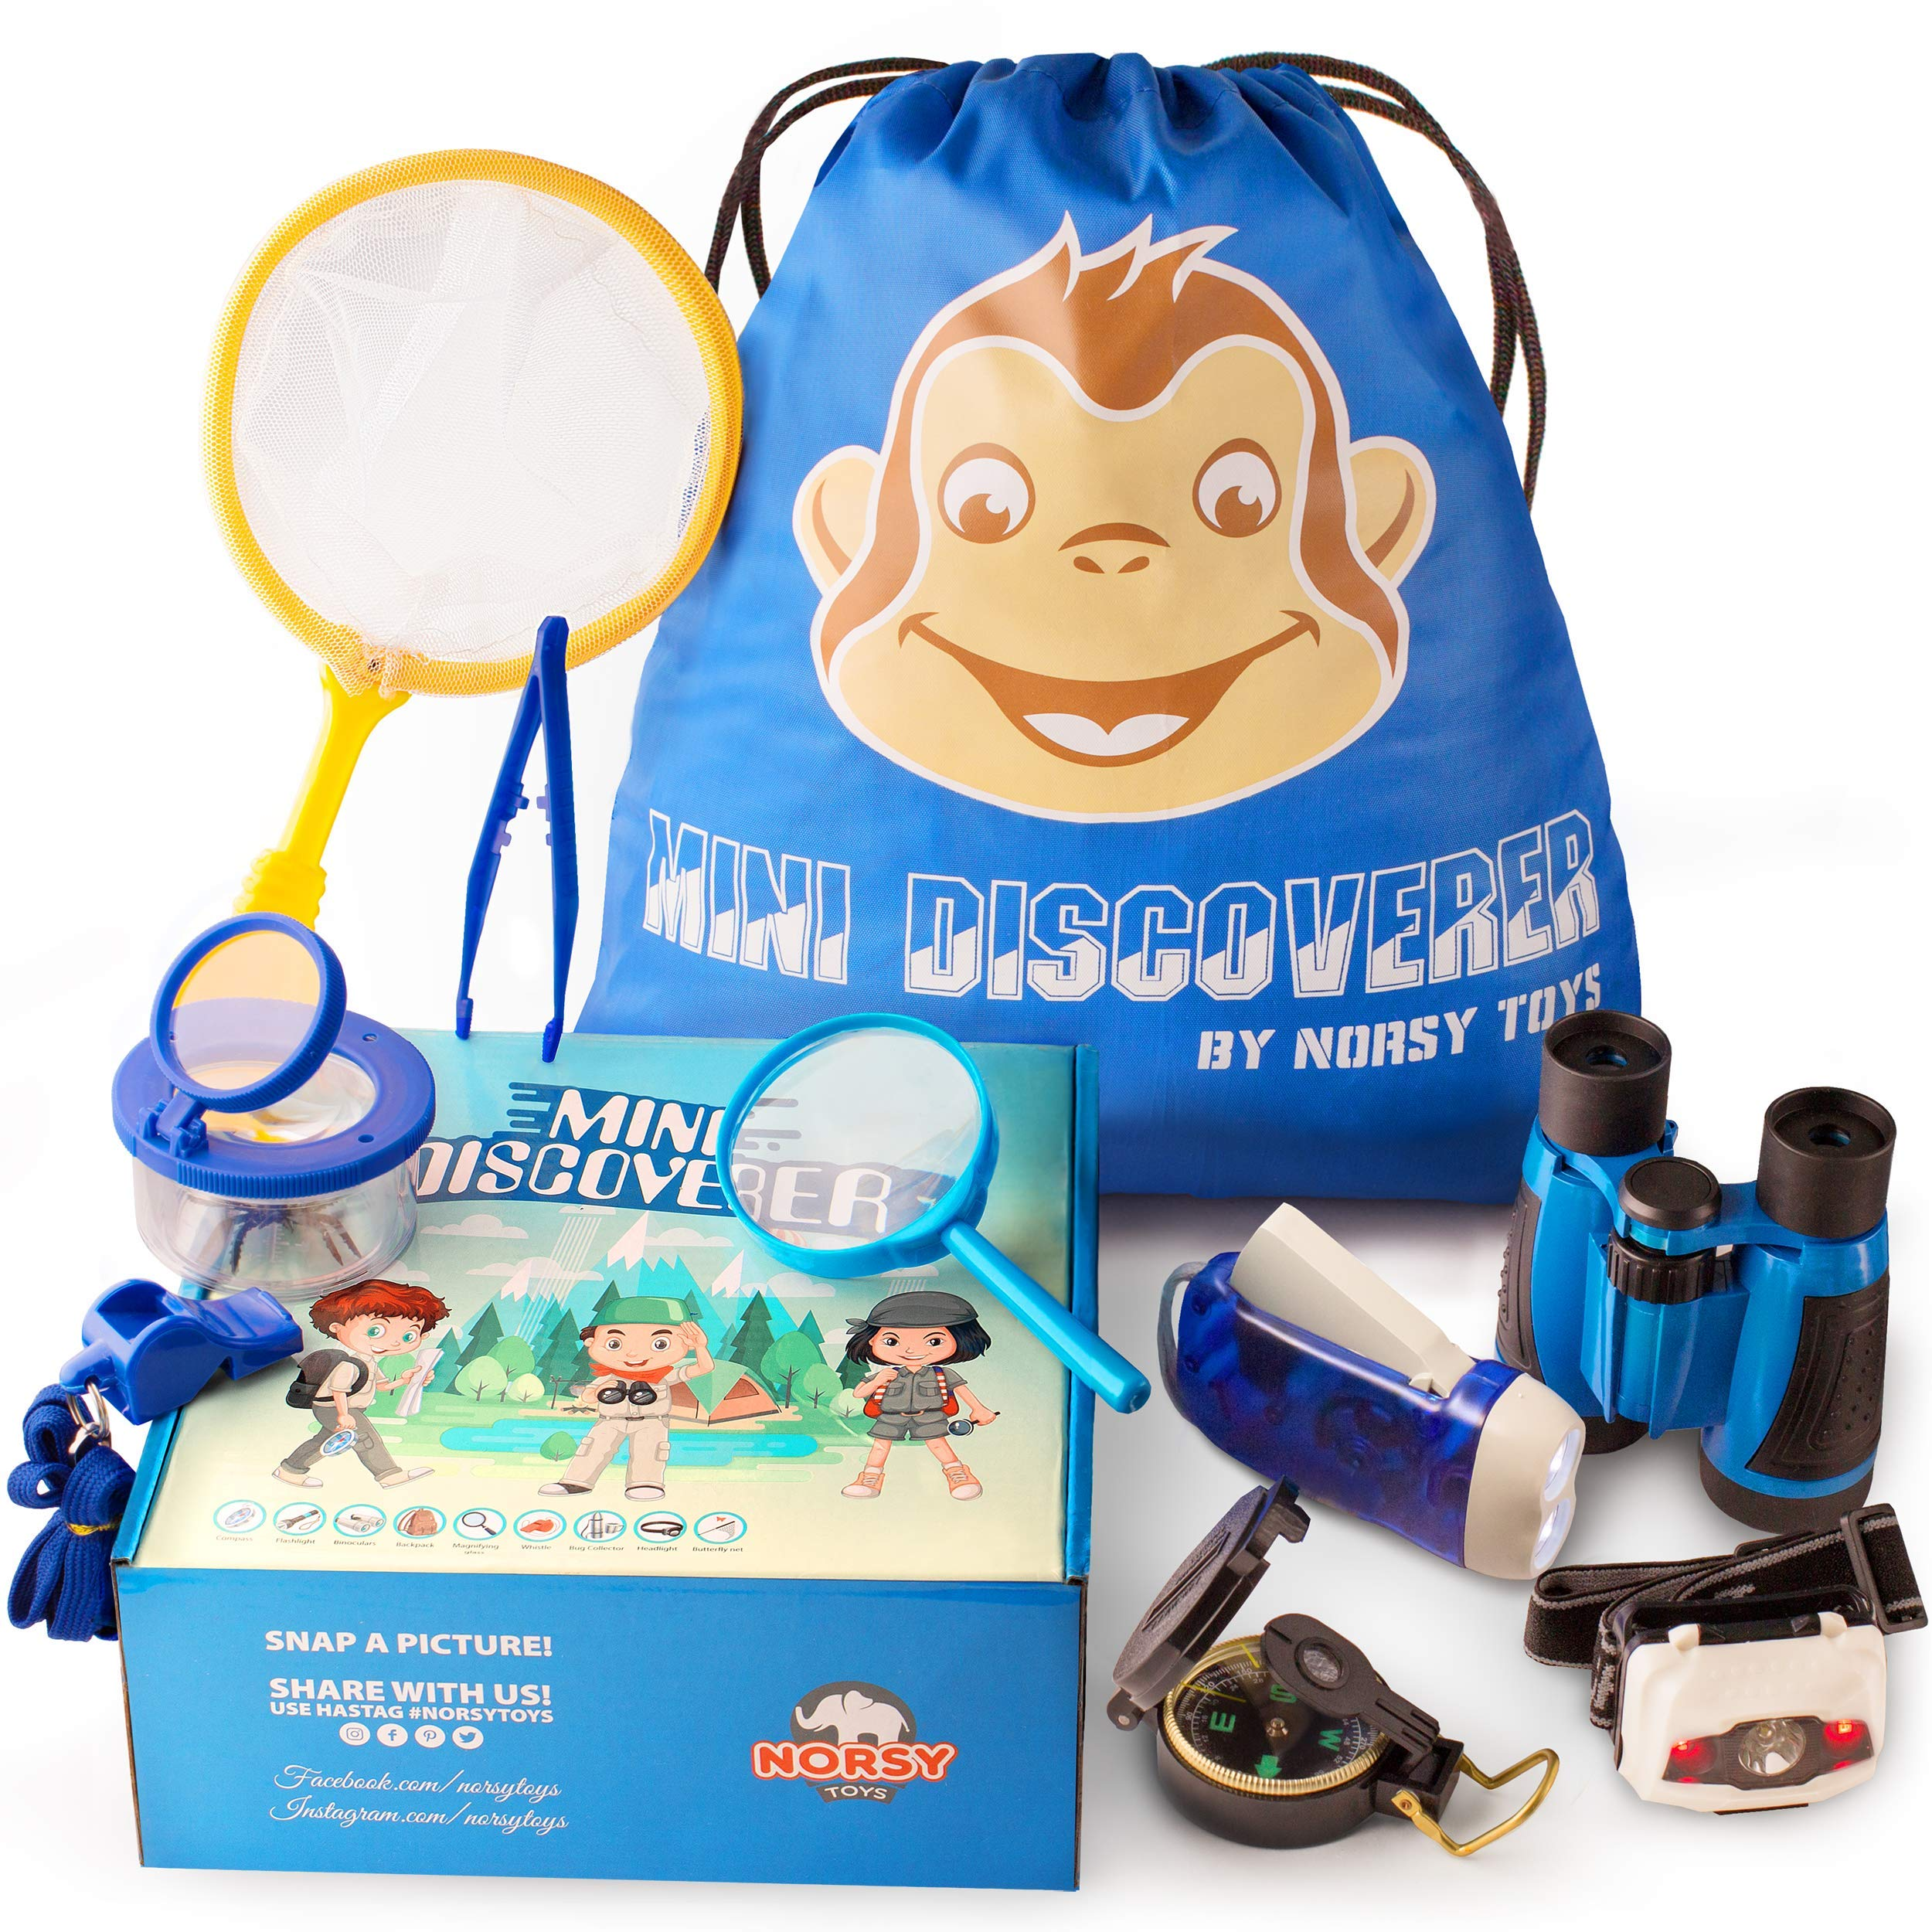 Norsy Toys - Kids Camping Gear - Explorer Kit | Outdoor Exploration Set for Boys & Girls Age 3-12 year old - Nature Exploring for Adventure kid - Perfect Gifts for Kid's Birthday, Christmas & Hiking